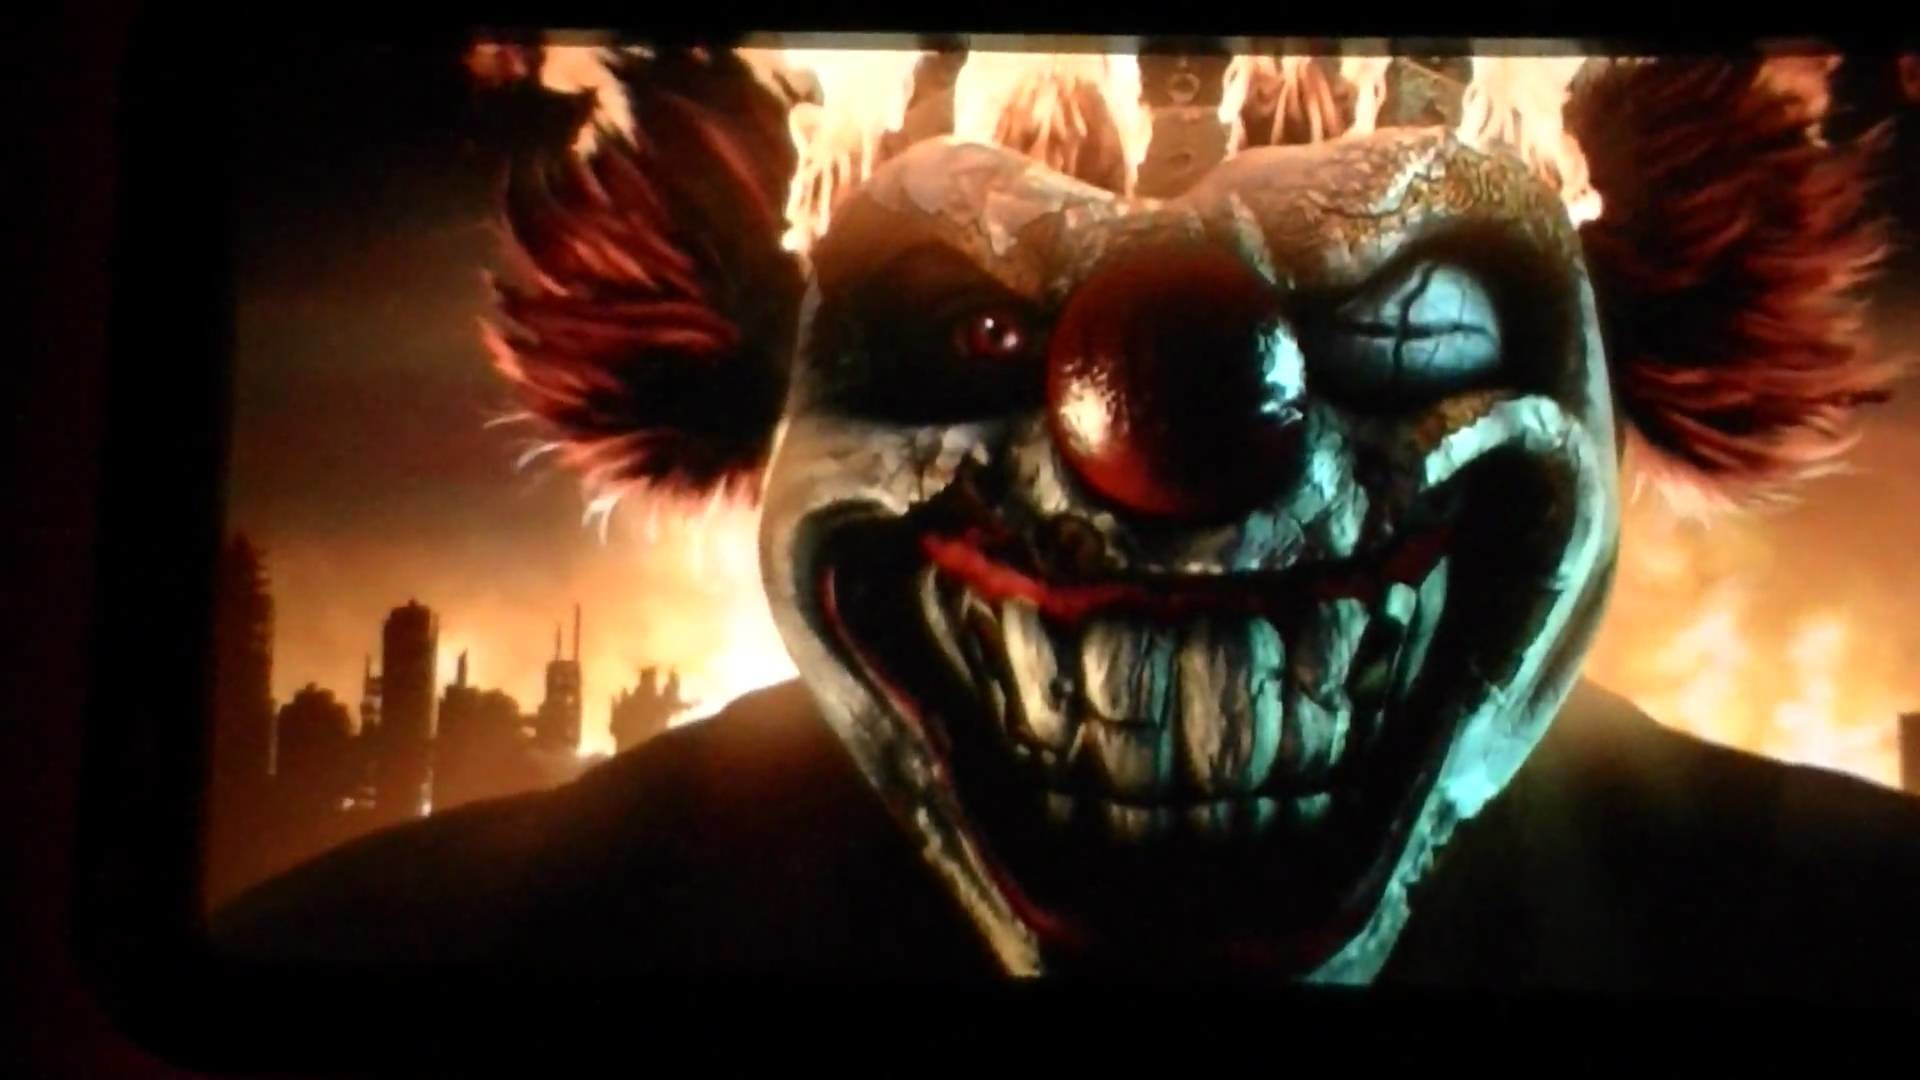 Twisted metal sweet tooth wallpaper 71 images - Sweet tooth wallpaper twisted metal ...